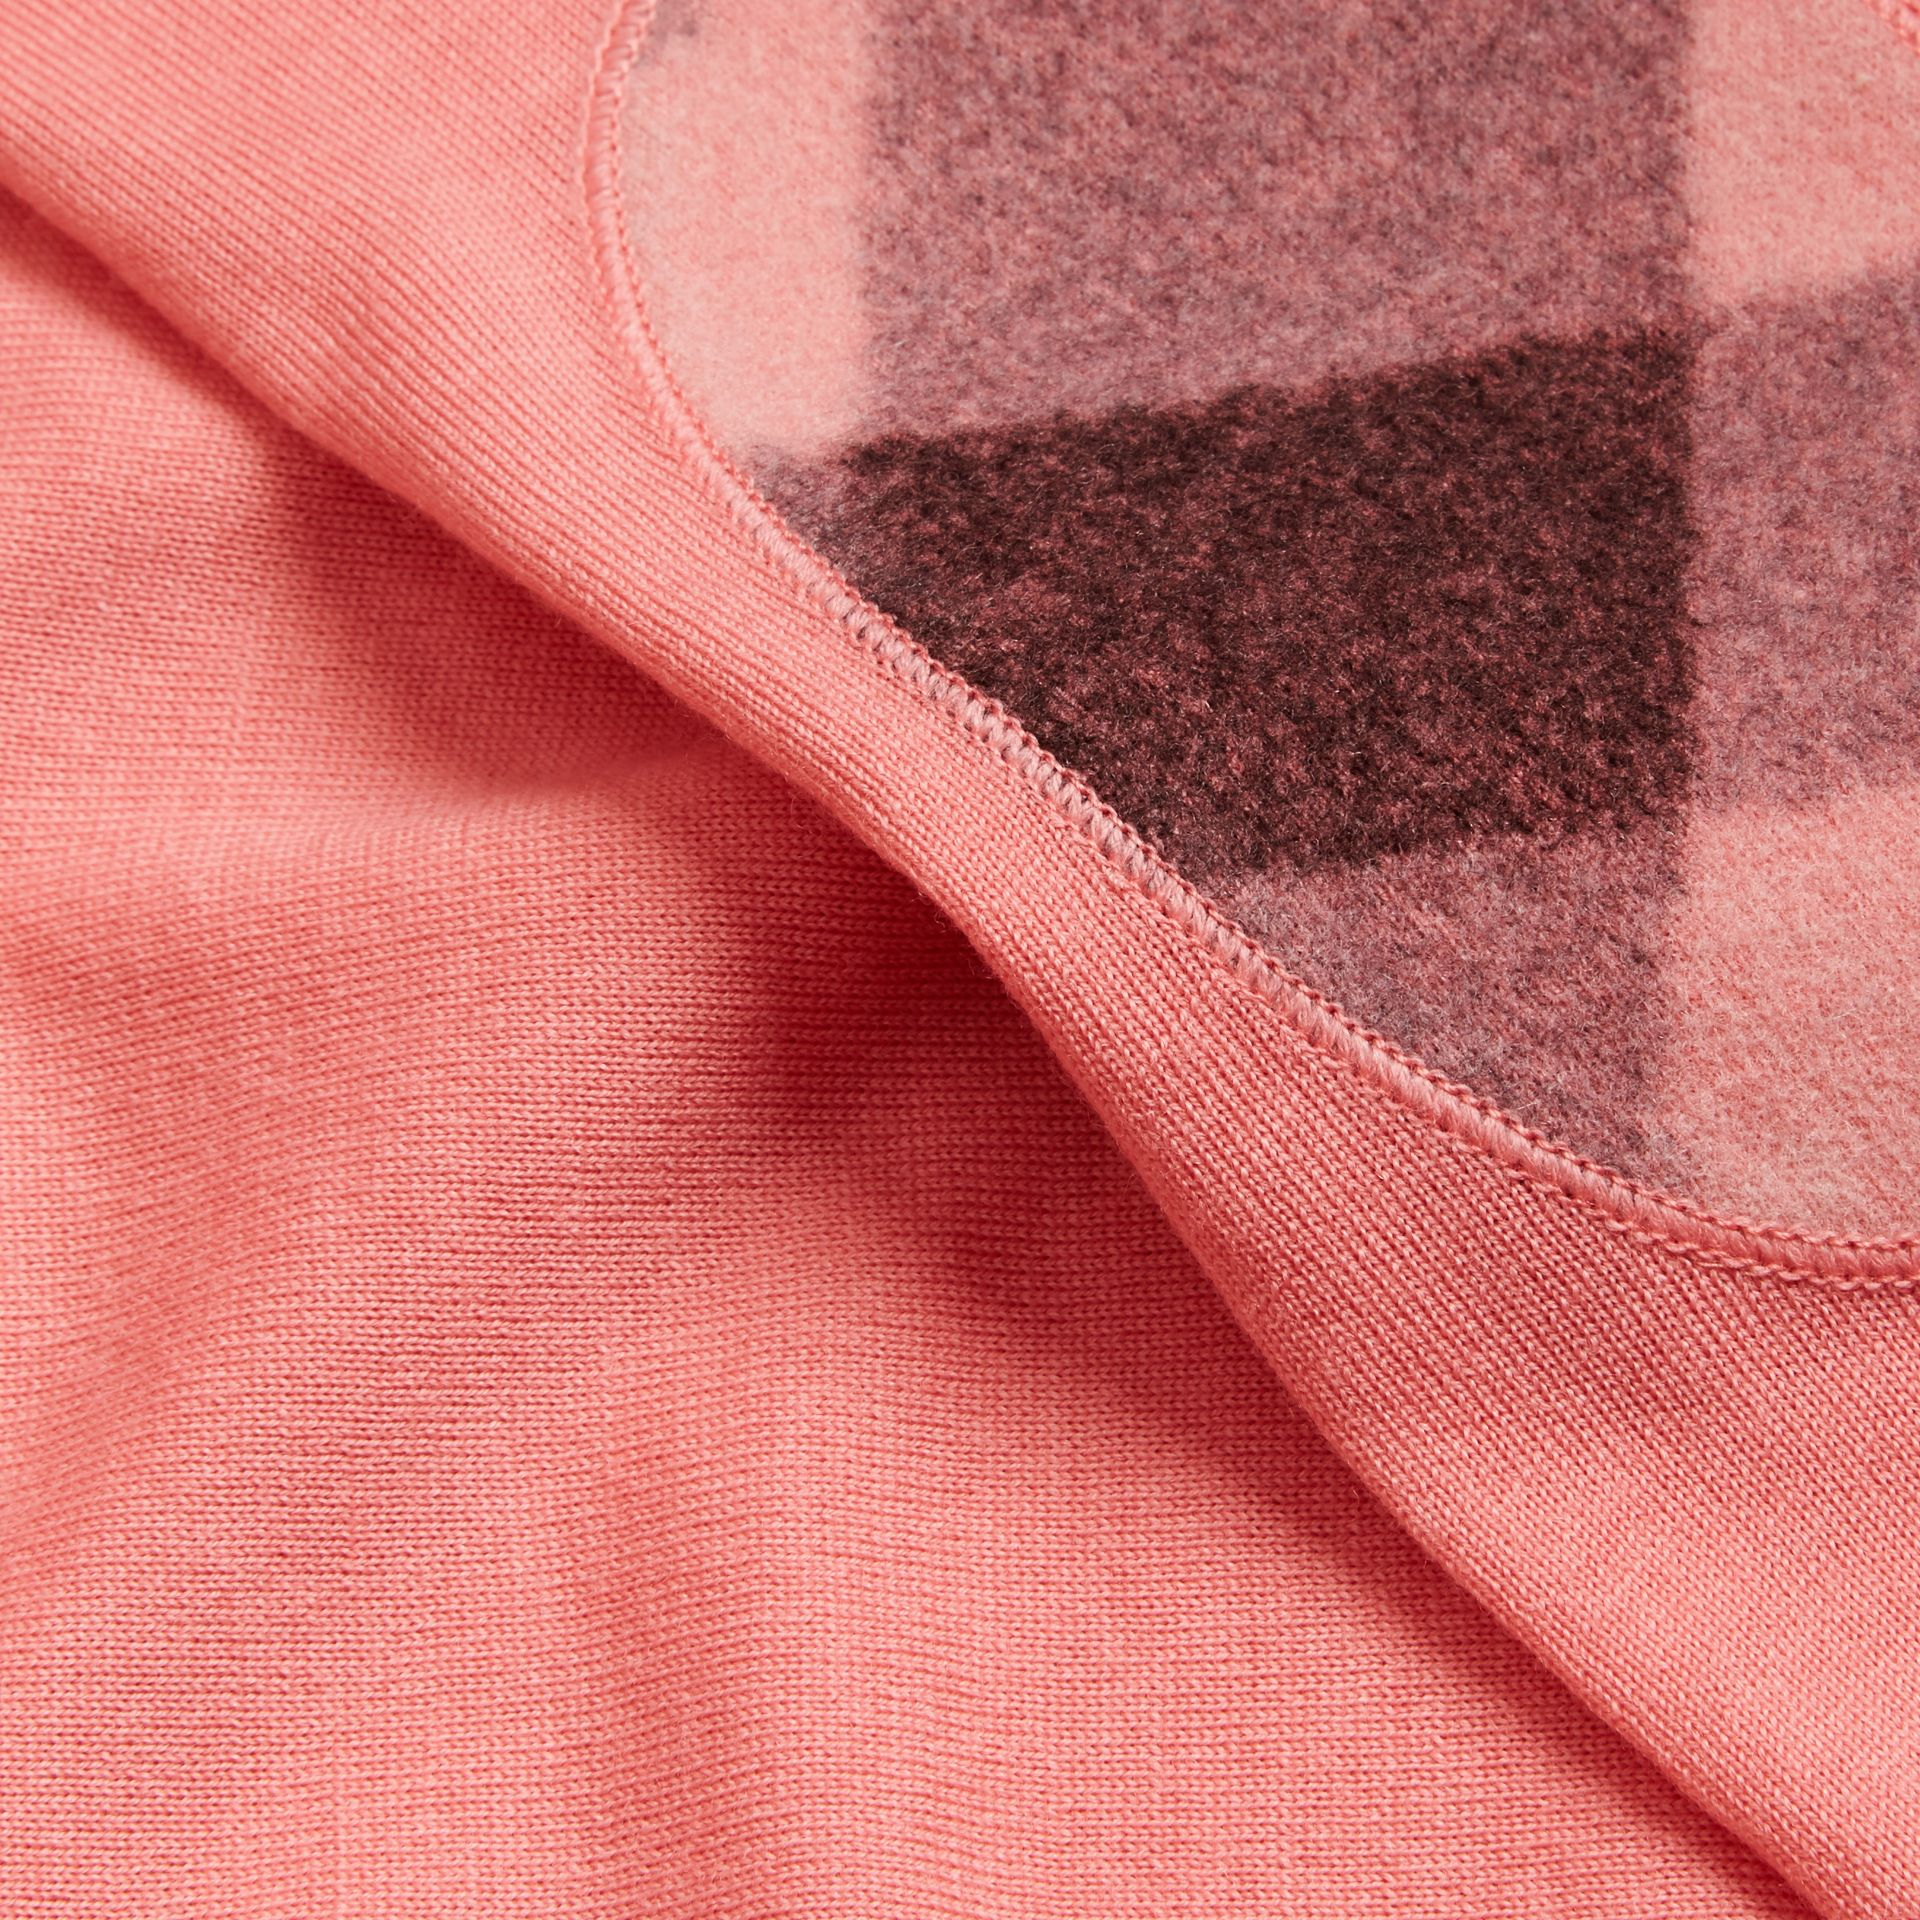 Pale rose pink Check Detail Merino Wool Crew Neck Sweater Pale Rose Pink - gallery image 2